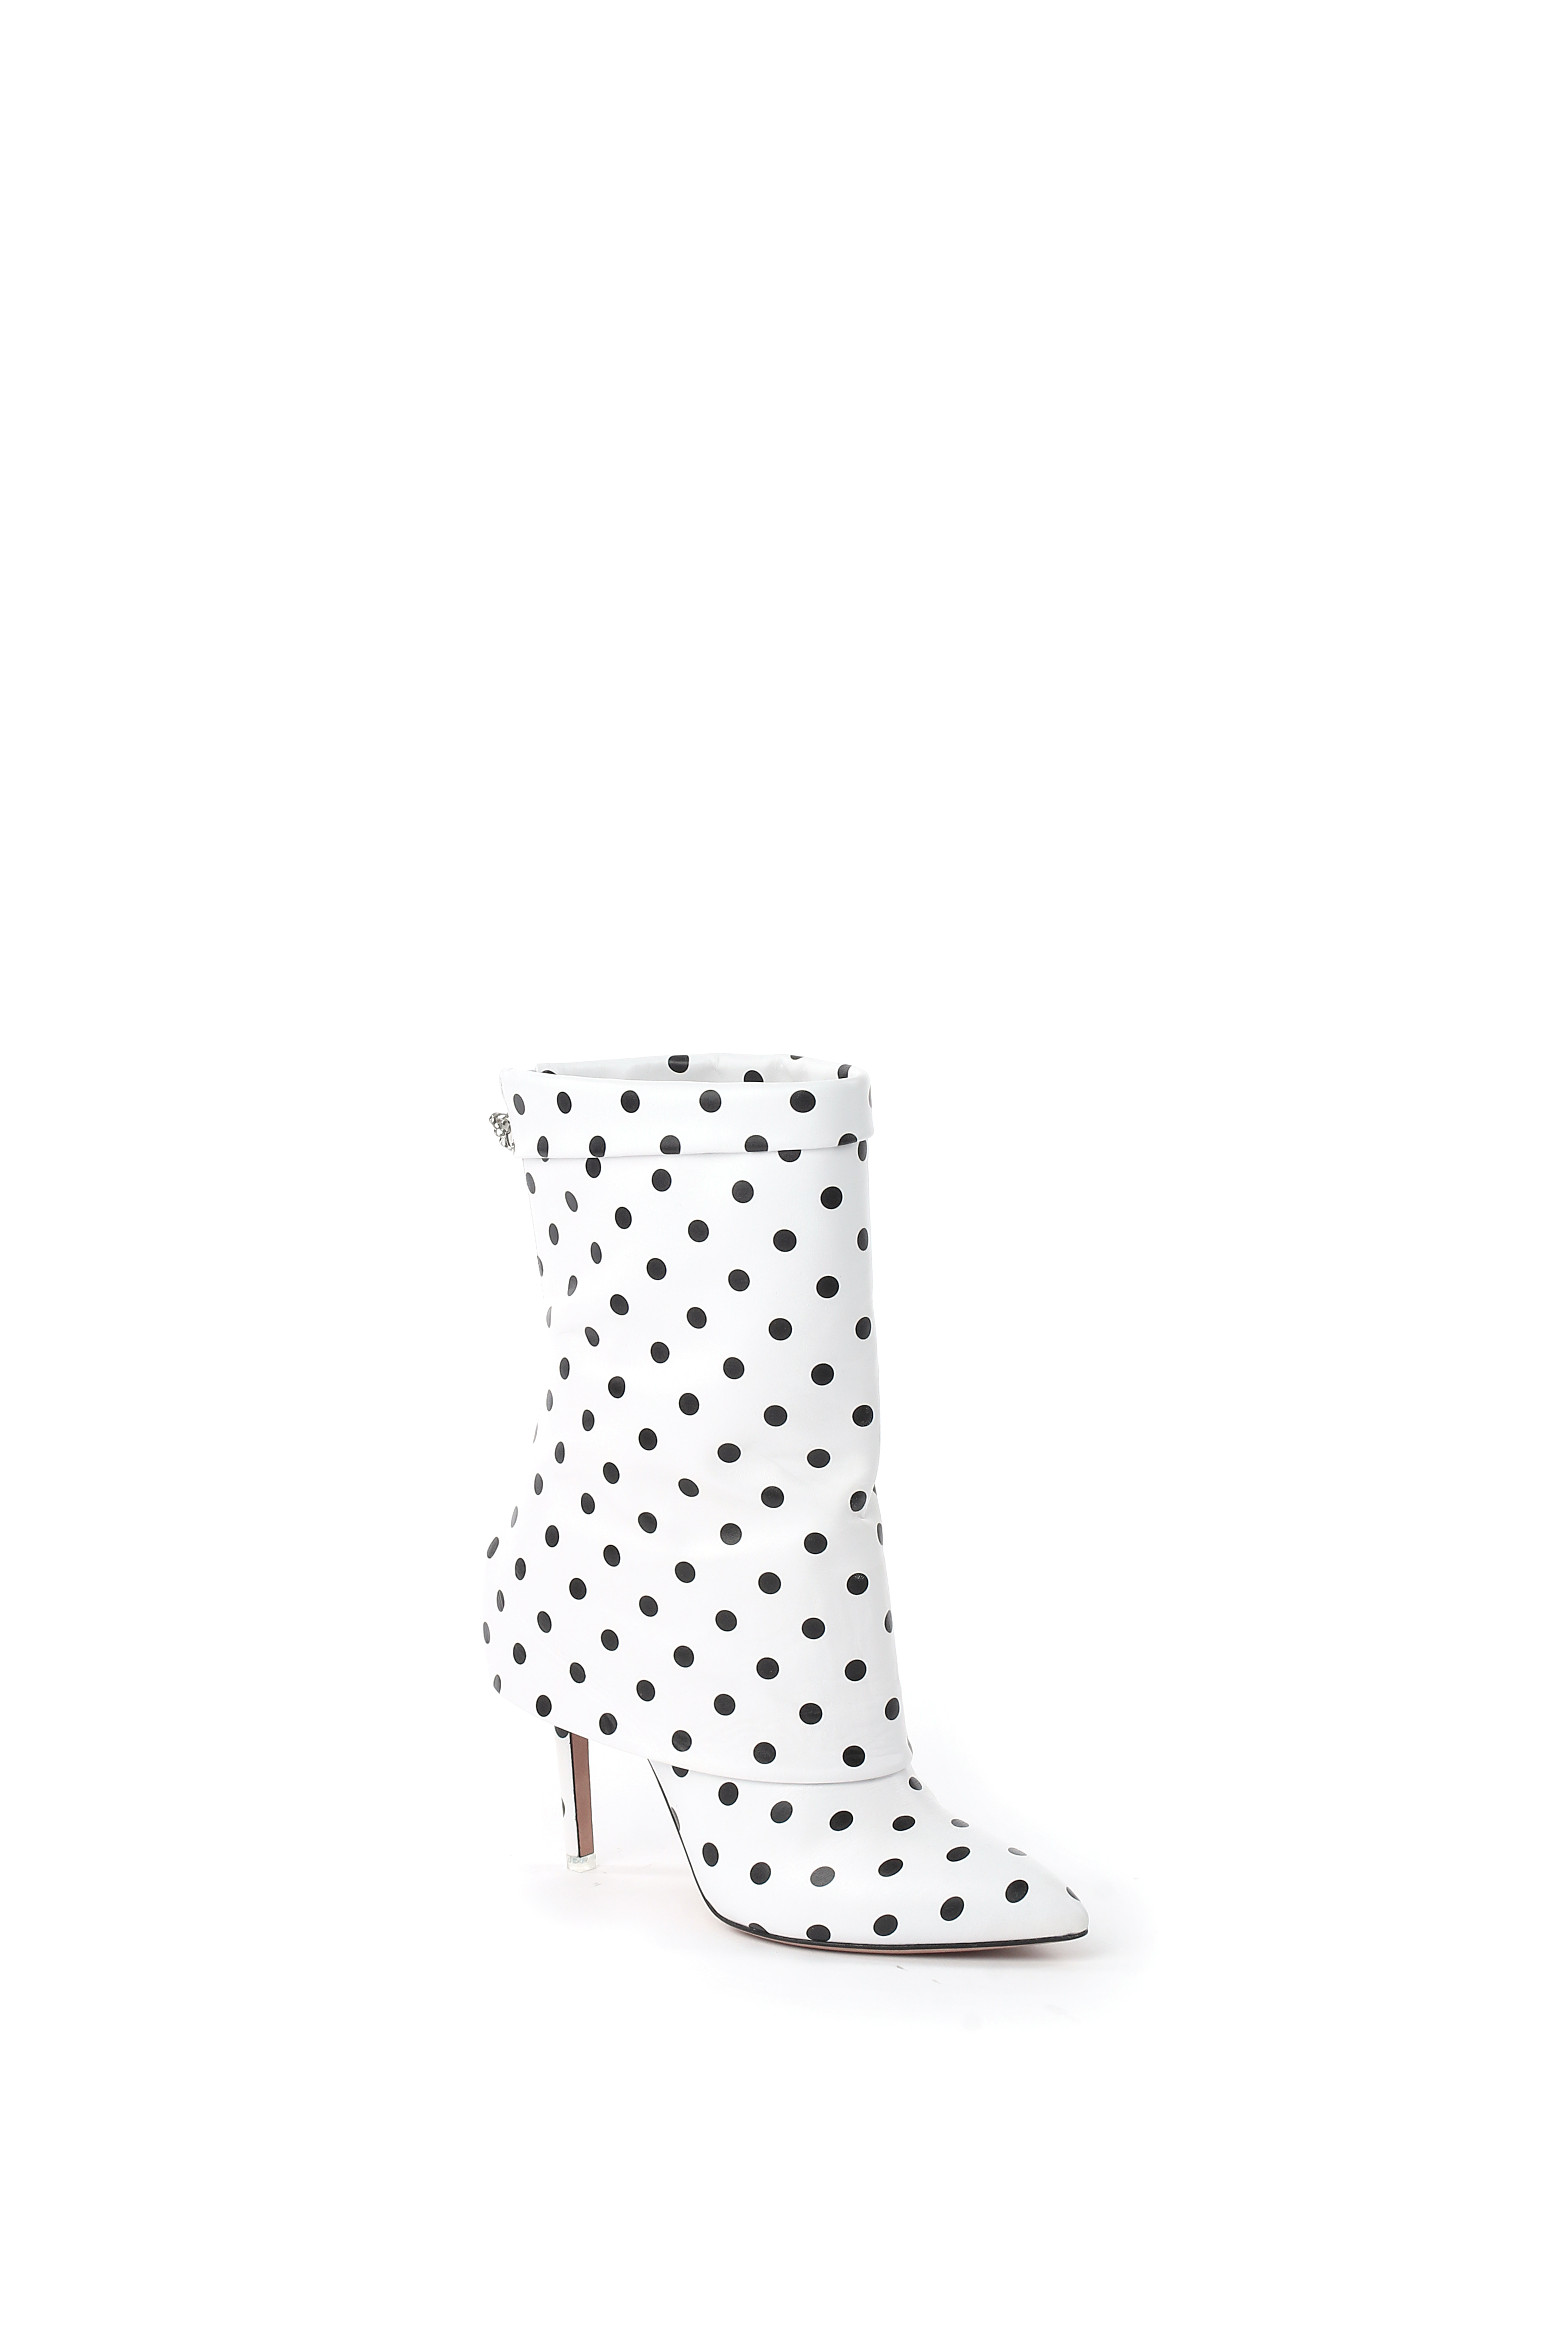 A boot from the Emanuel Ungaro capsule with Francesca Mambrini.